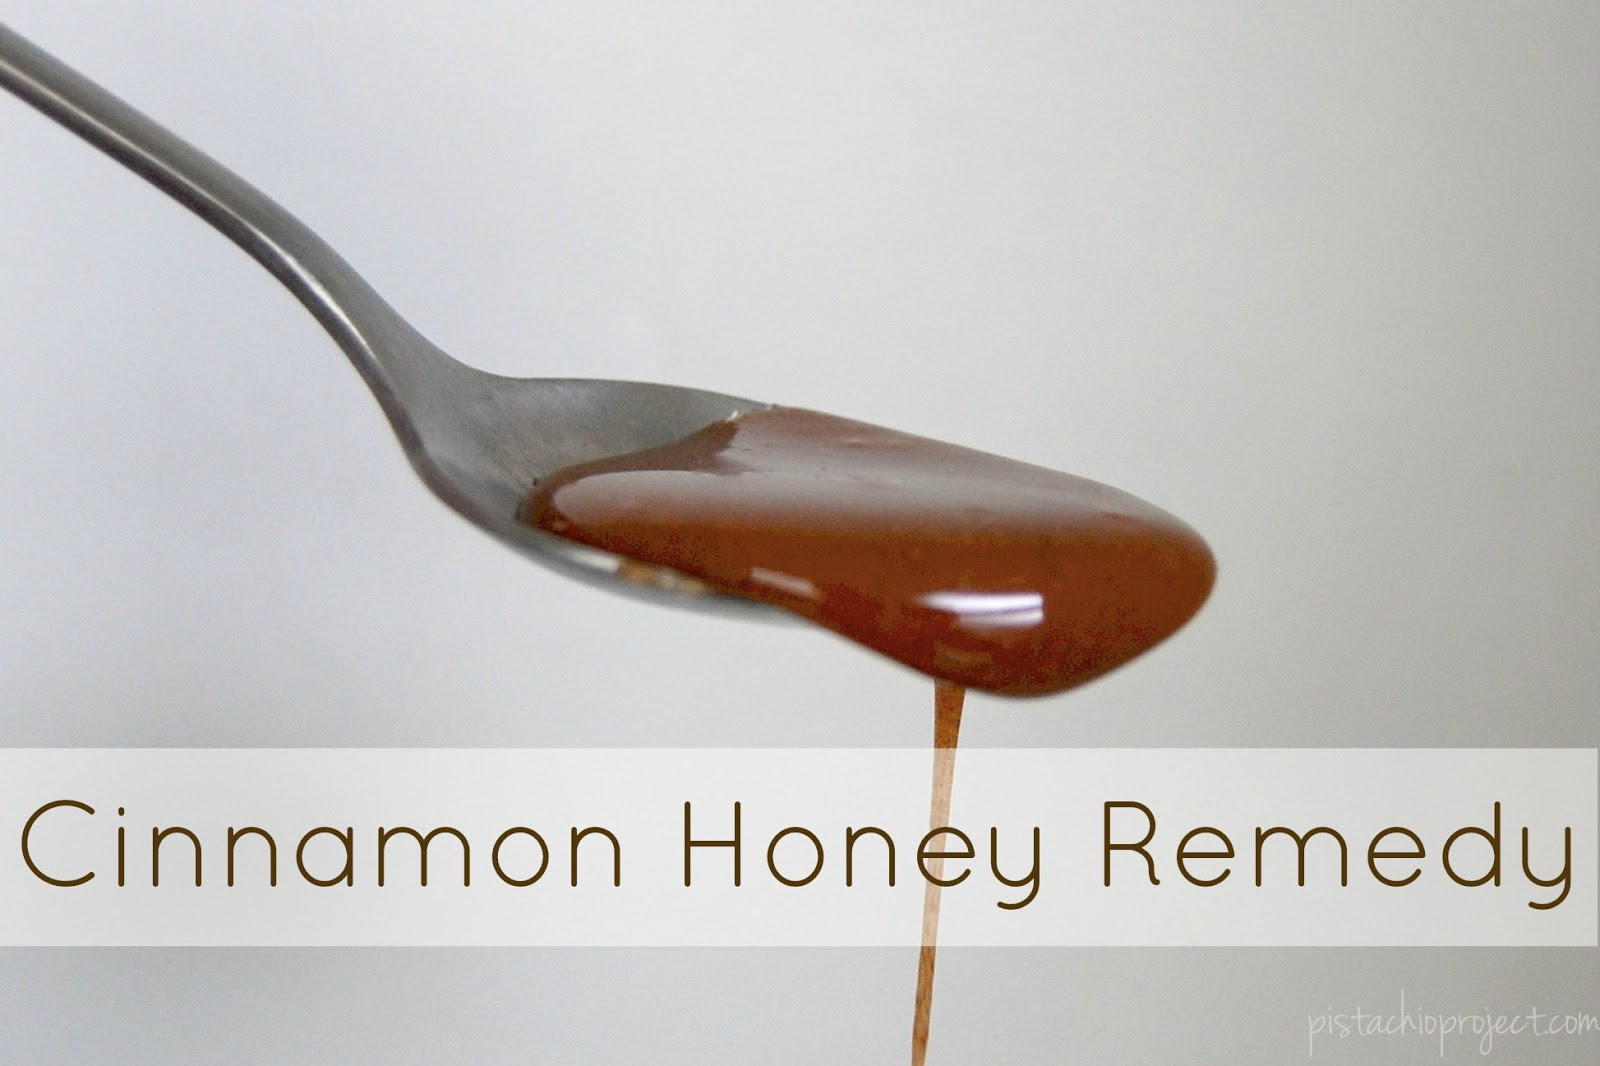 Cinnamon Honey Remedy